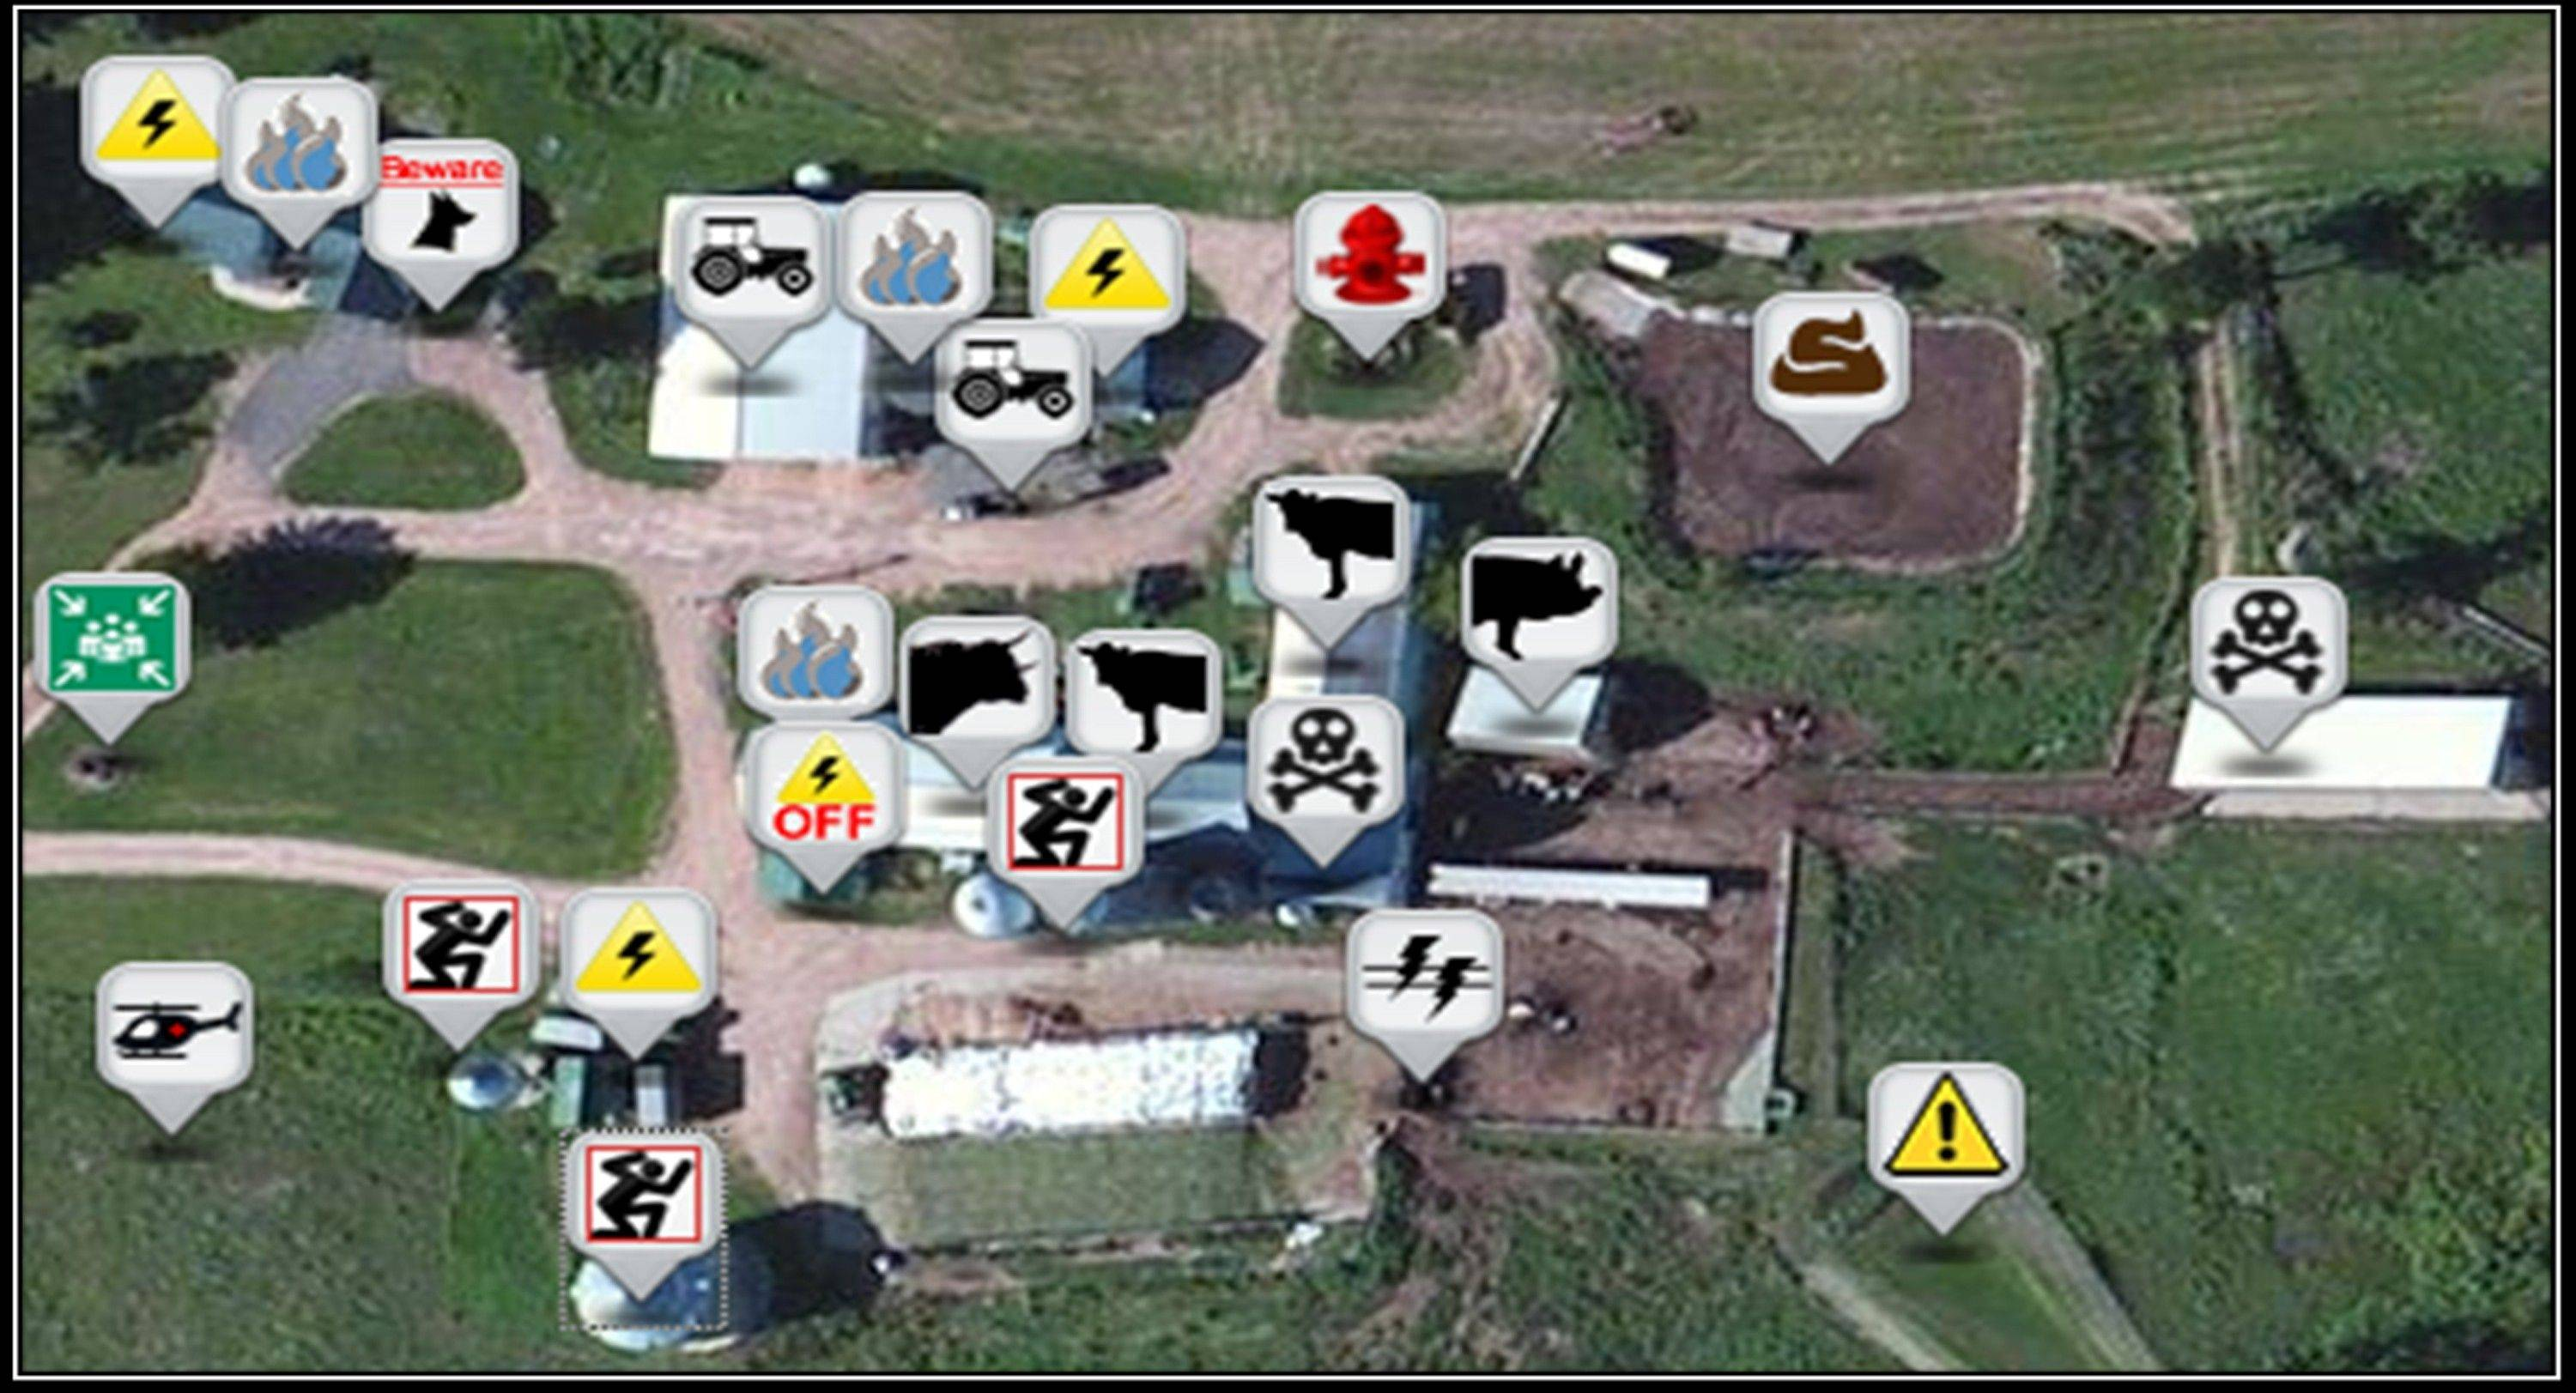 In this undated photo provided by the National Farm Medicine Center is a sample from the Farm MAPPER database showing icons representing farm animals, chemicals, power sources and other dangers on an aerial view of a farm. The organization is working with farmers and firefighters in Wisconsin to develop digital maps that firefighters can use to avoid hazards when they respond to calls on farms.